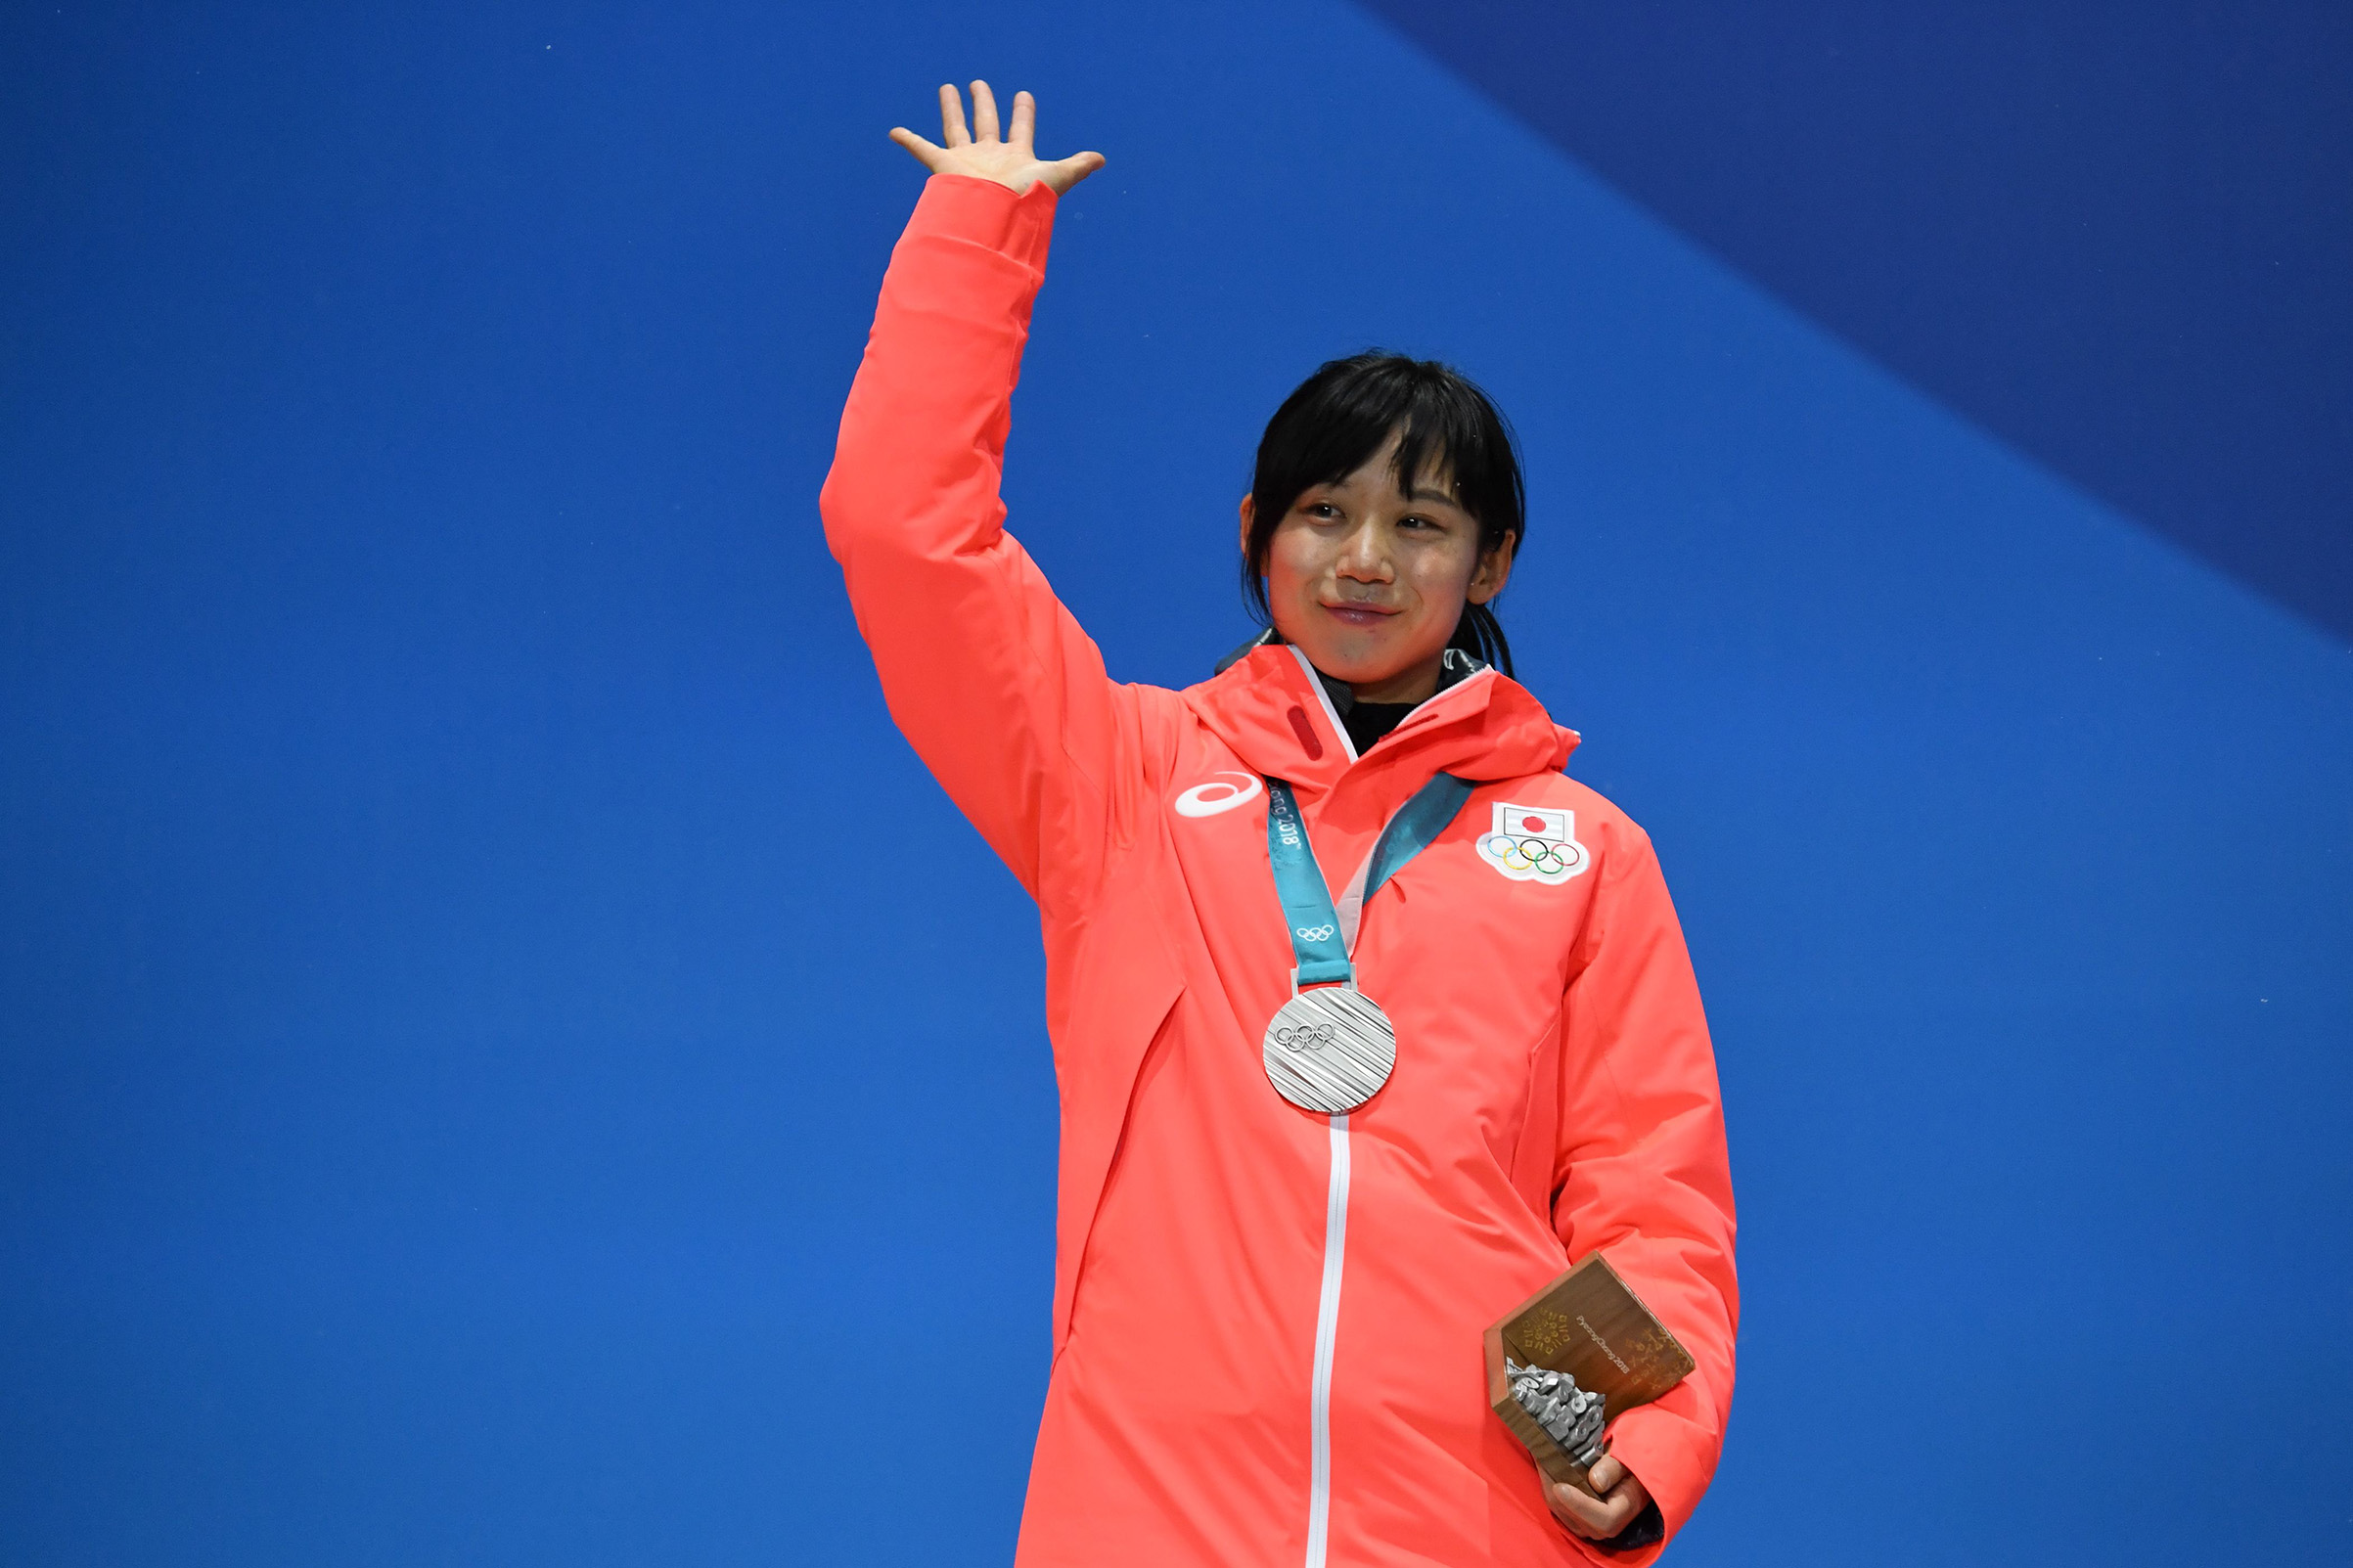 Japan's silver medallist Miho Takagi waves on the podium during the medal ceremony for the speed skating women's 1500m on Feb. 13, 2018.